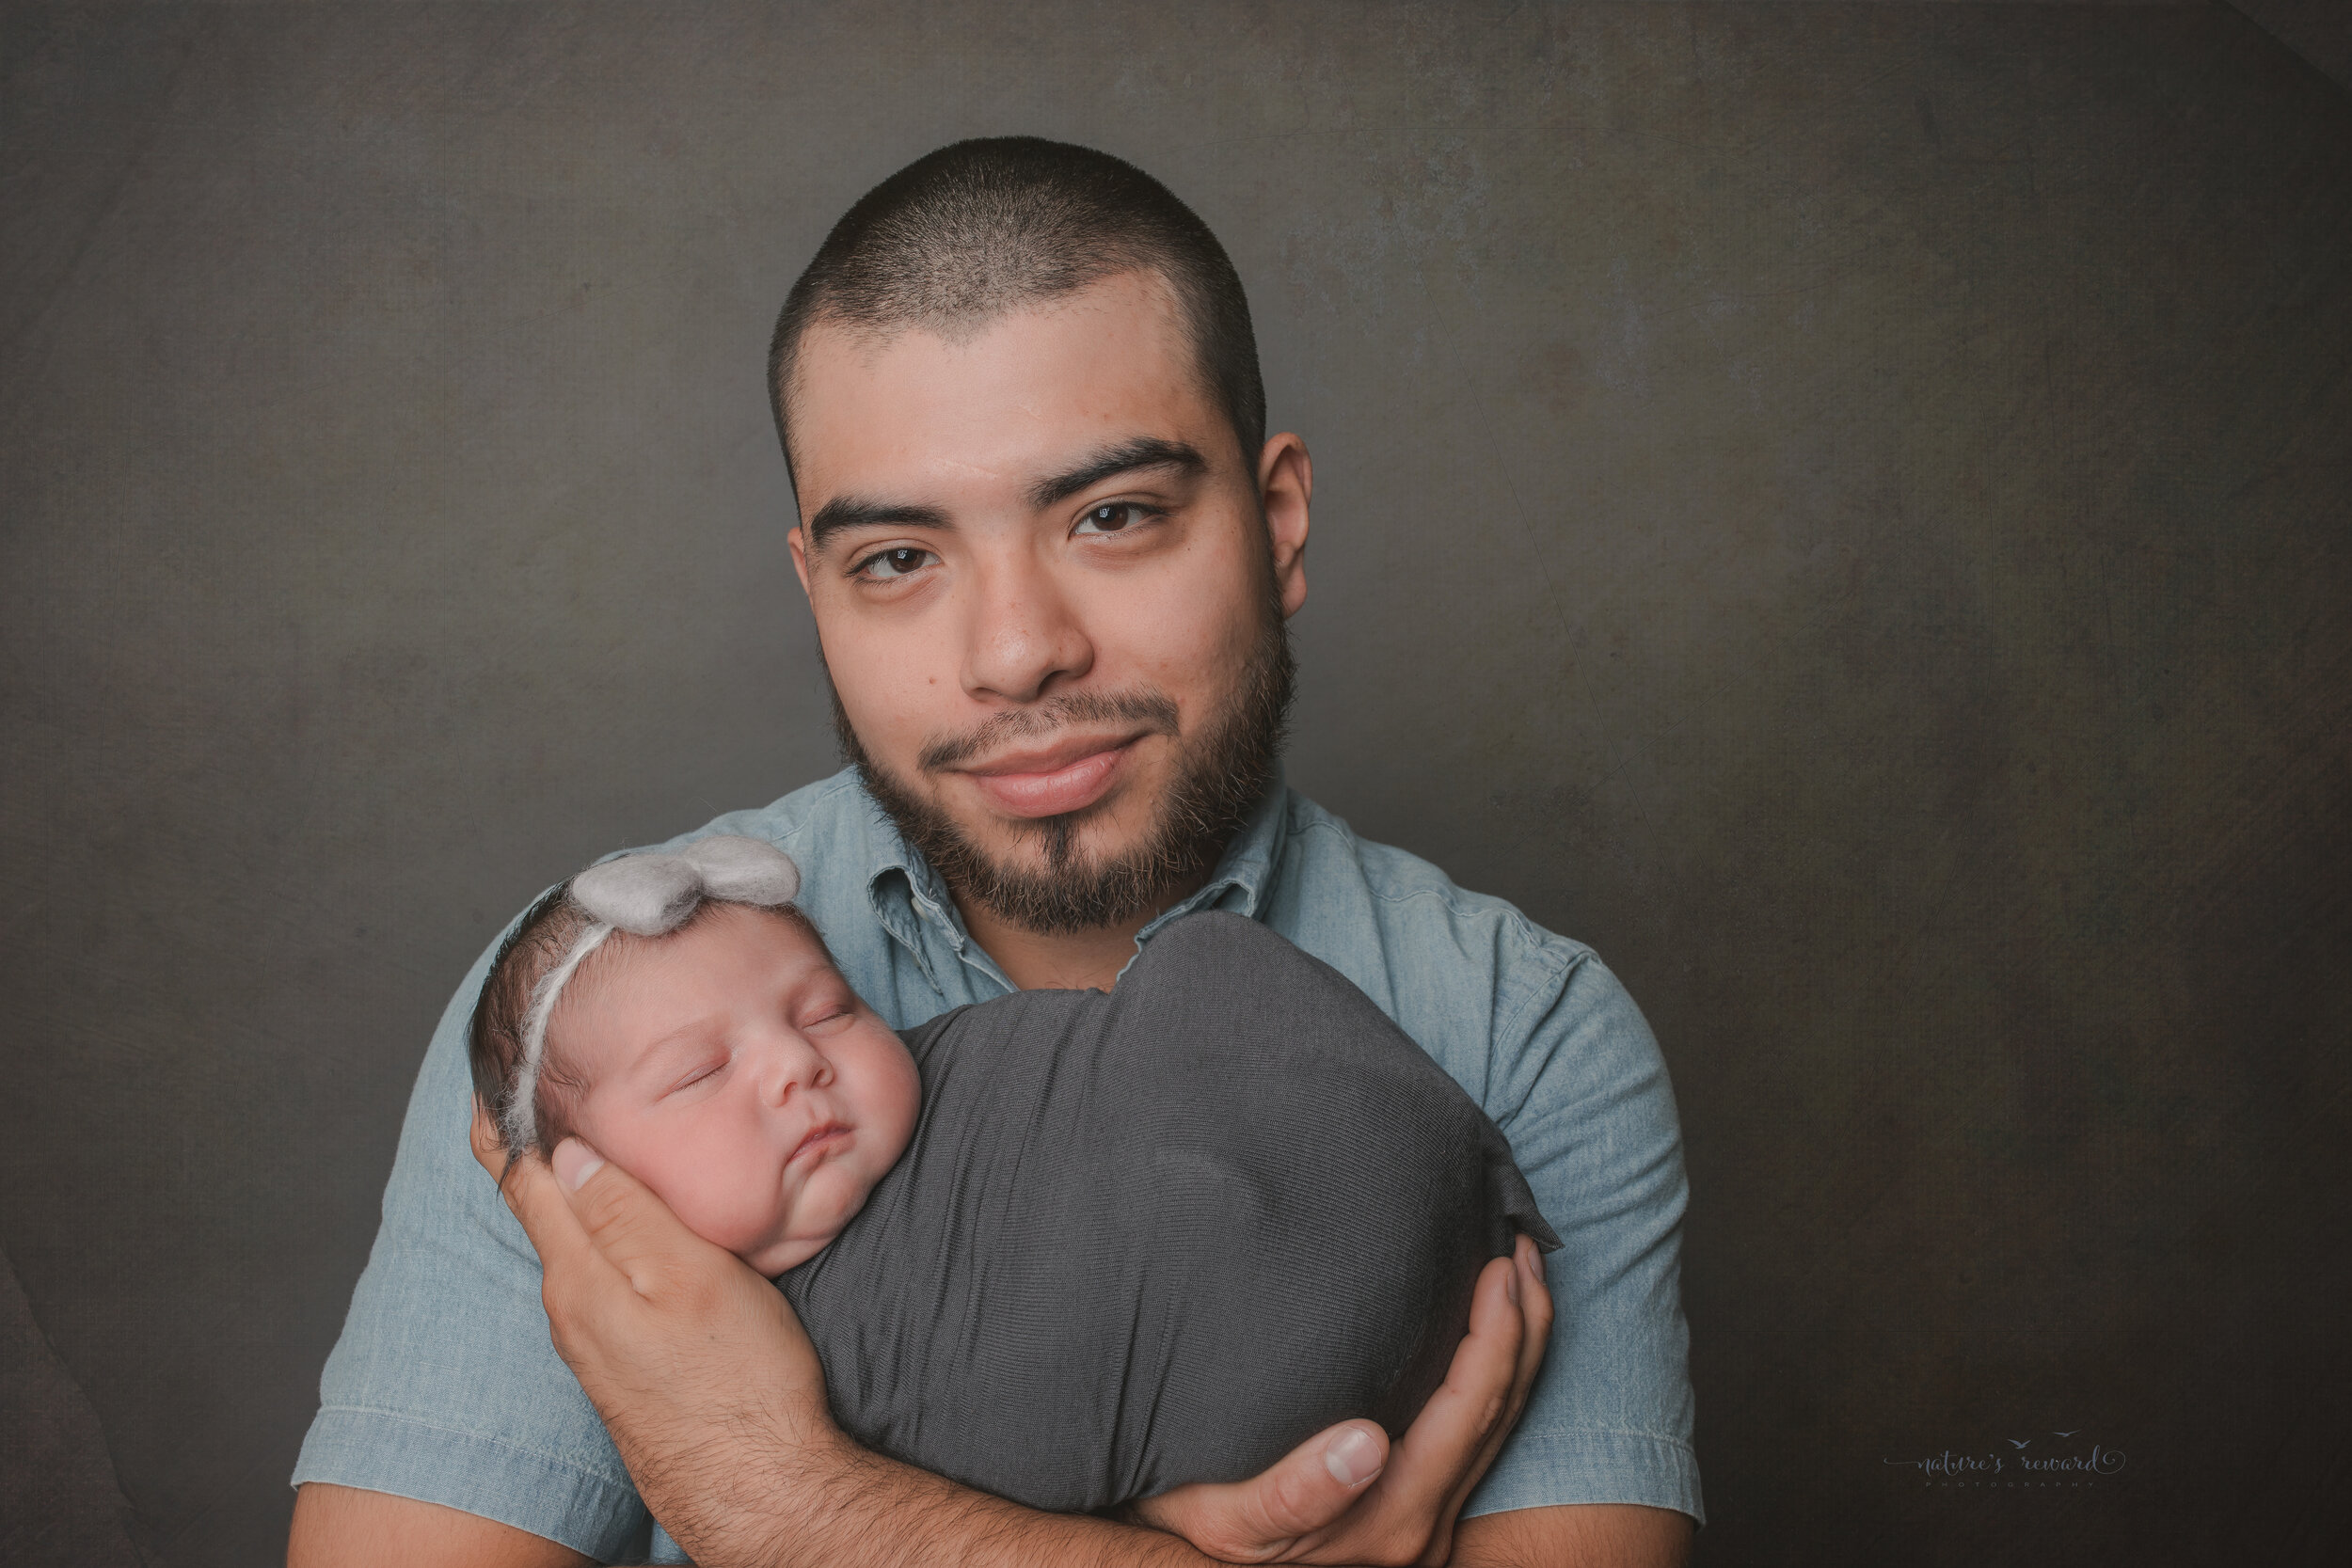 With dad, a newborn Portrait by Nature's Reward Photography